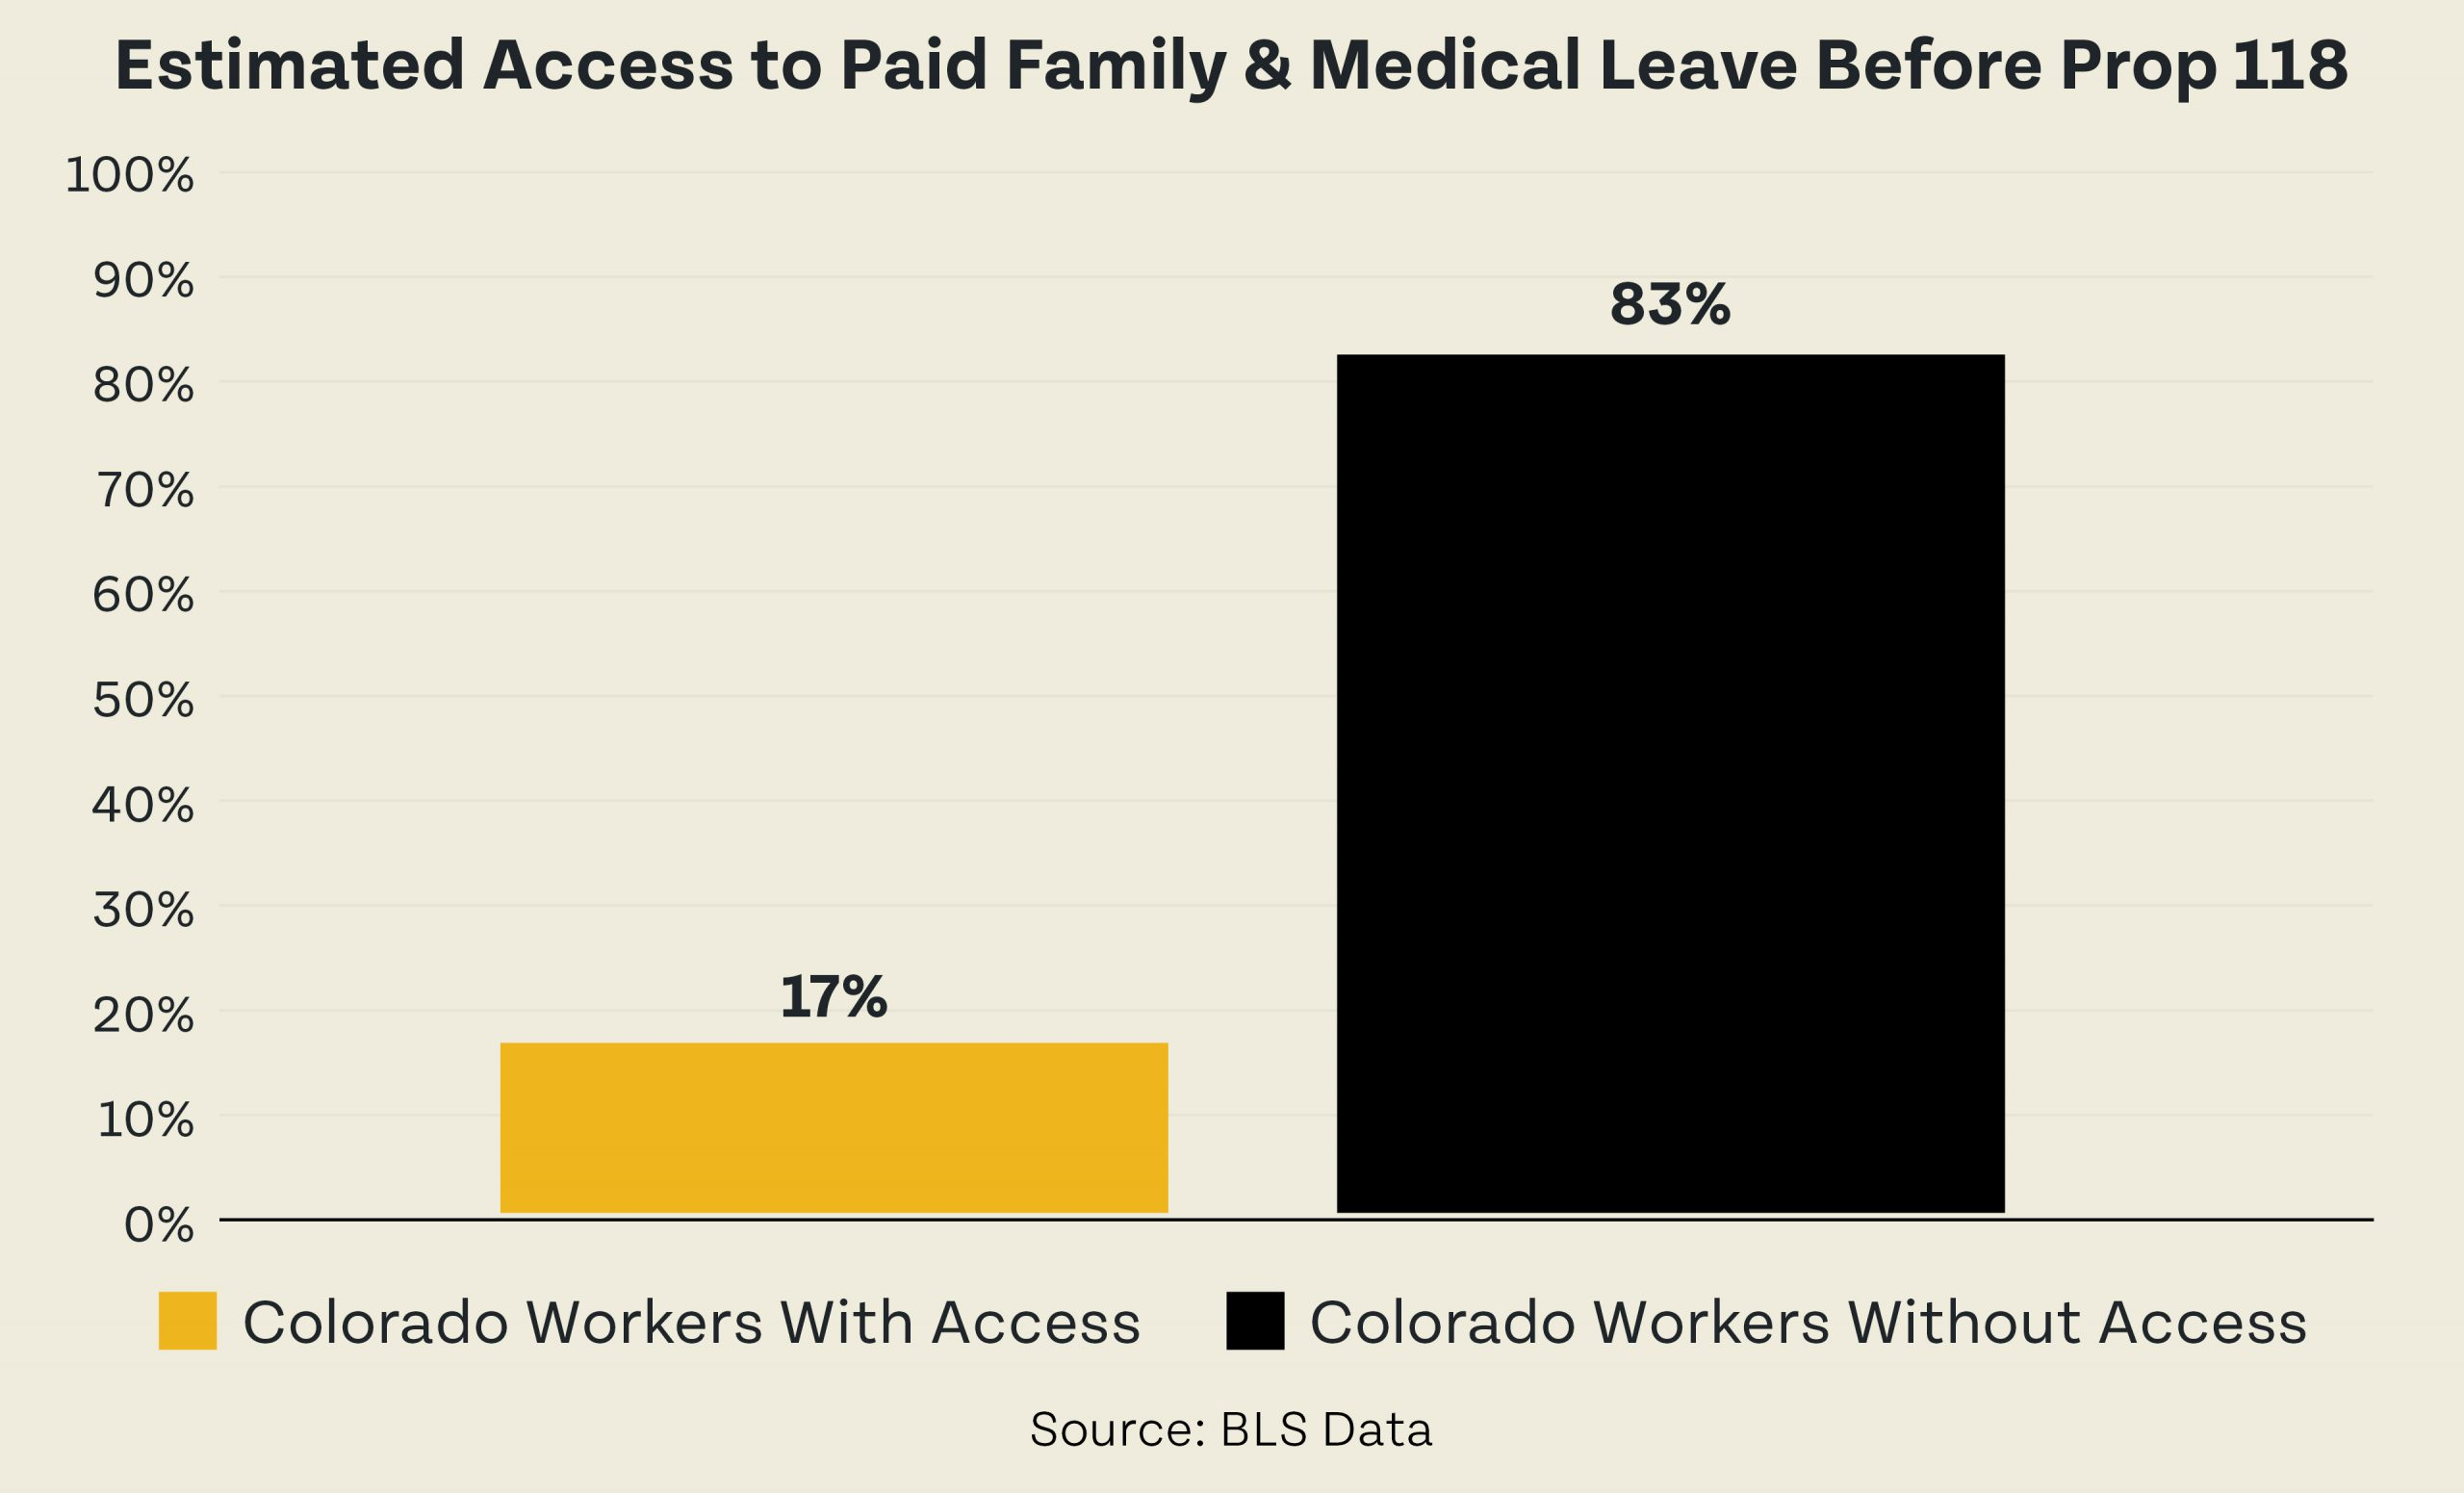 Estimated Access to Paid Family & Medical Leave Before Prop 118